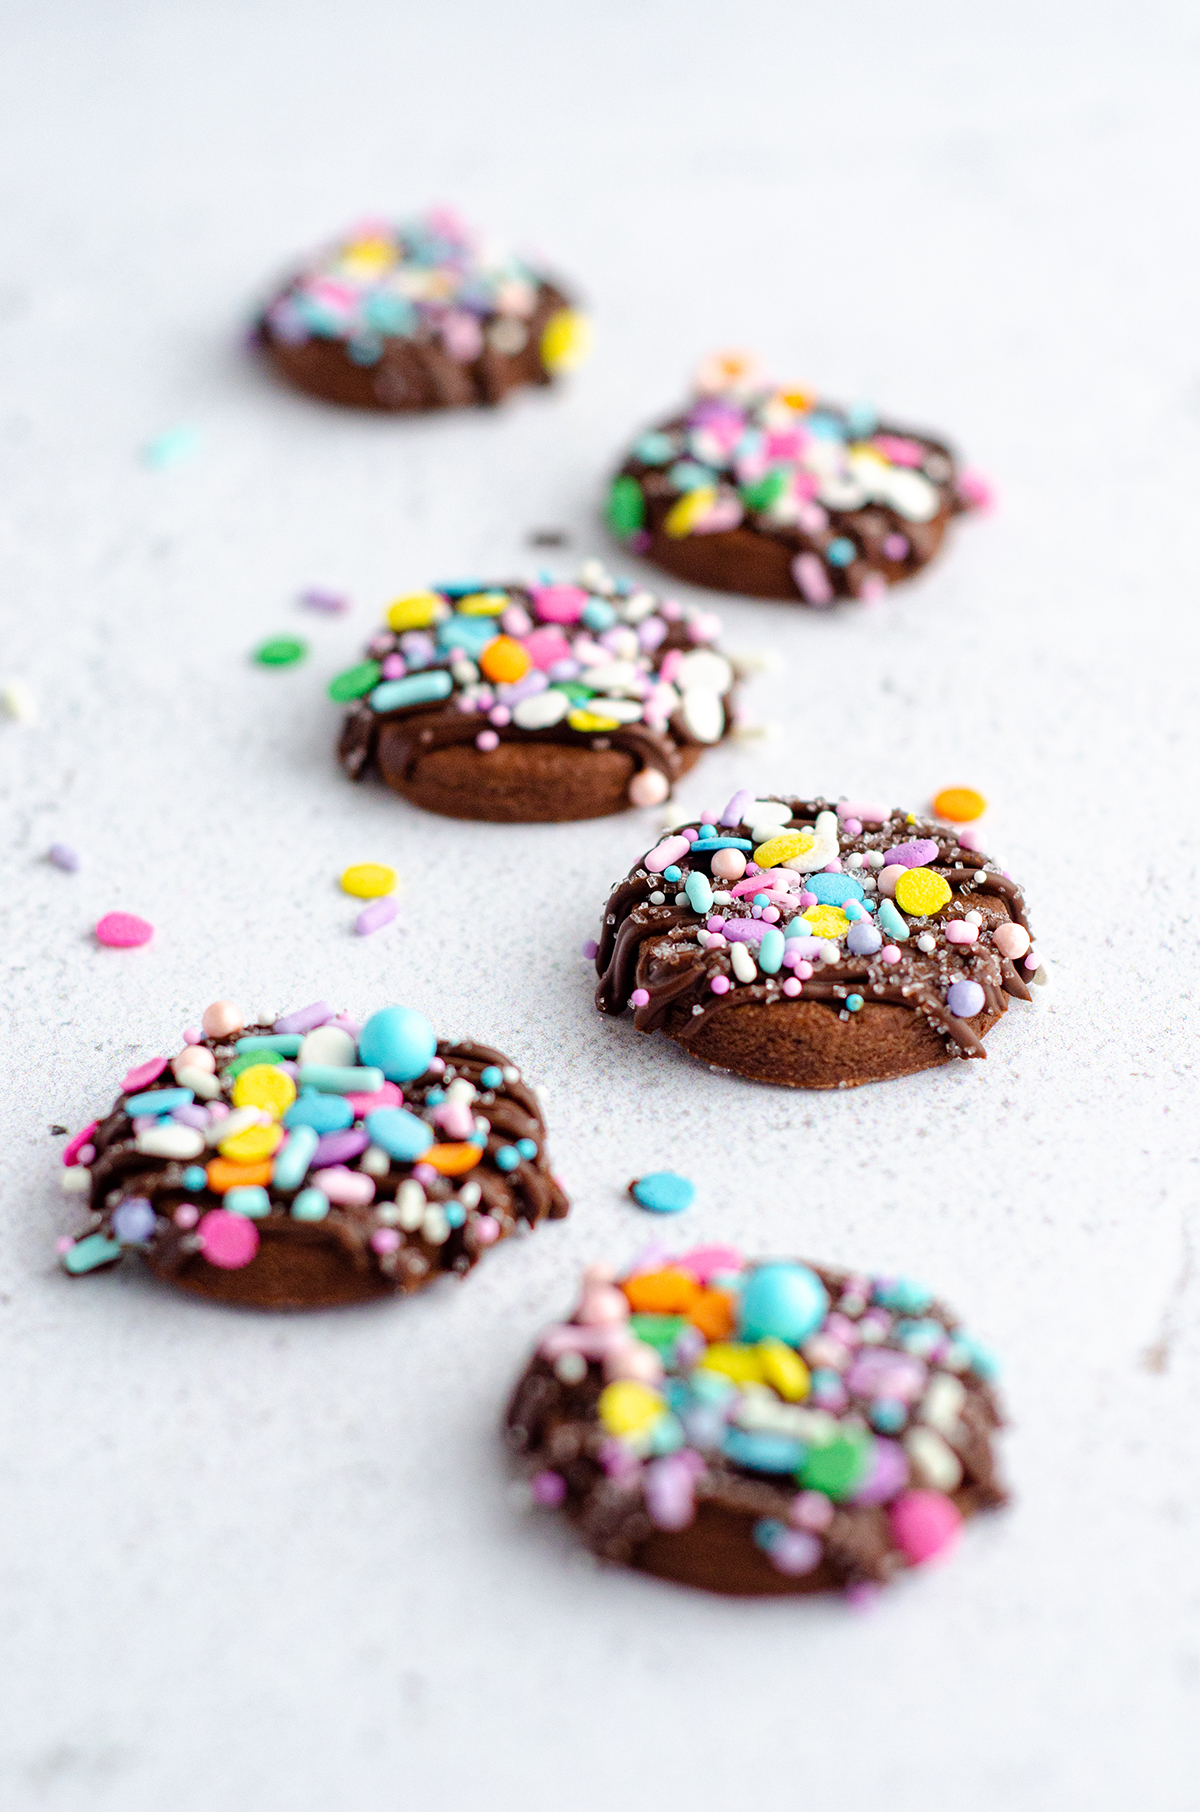 Soft chocolate sugar cookies that require no dough chilling and are perfect for shaping with cookie cutters. Crisp edges, soft centers, and plenty of room for decorative icing and sprinkles.